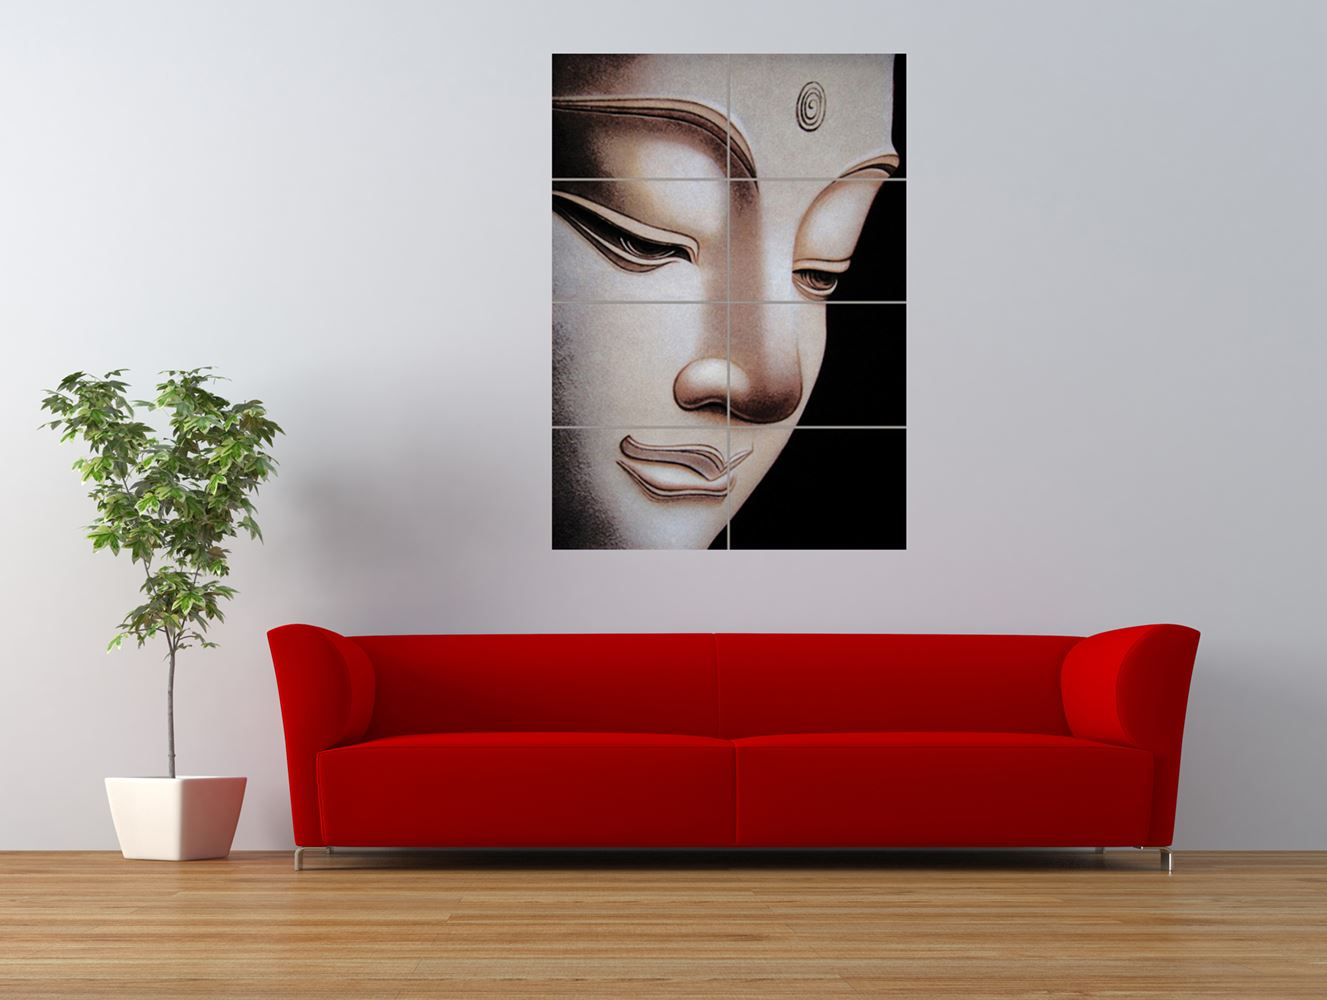 buddha buddhist religion lifestyle head giant art print panel poster nor0624 ebay. Black Bedroom Furniture Sets. Home Design Ideas